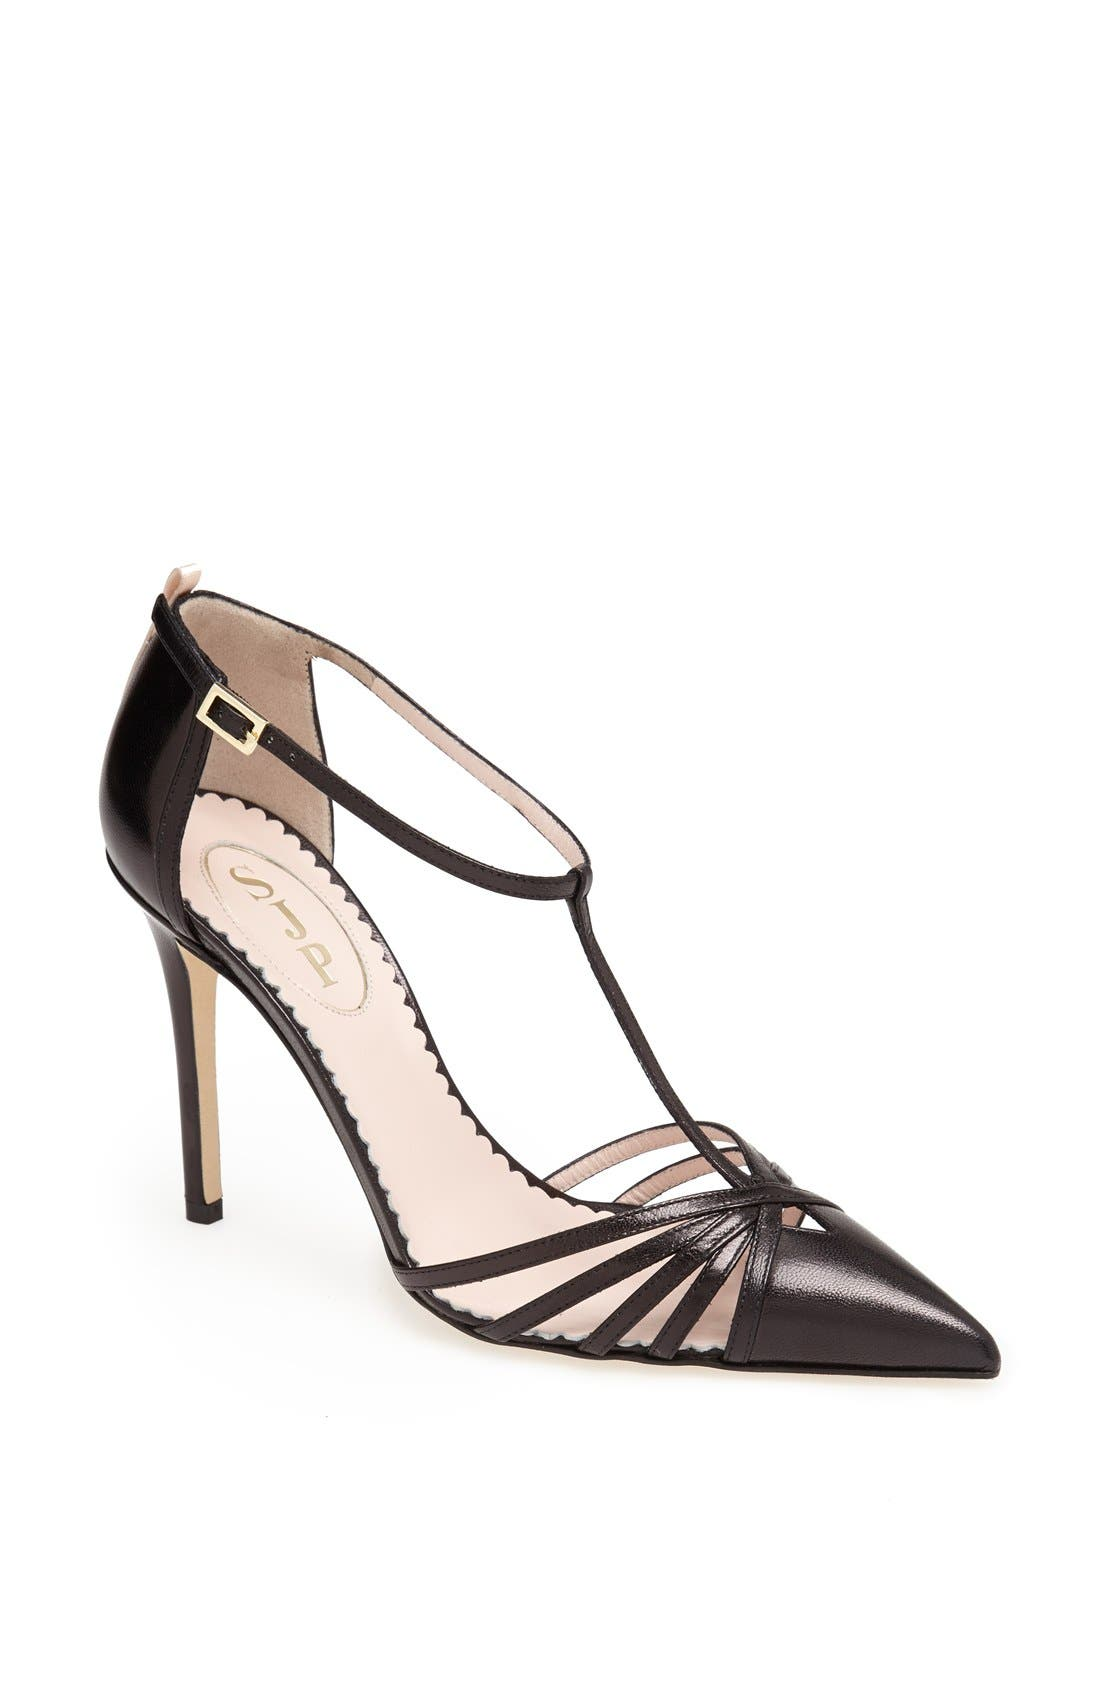 Alternate Image 1 Selected - SJP by Sarah Jessica Parker 'Carrie' T-Strap Pump